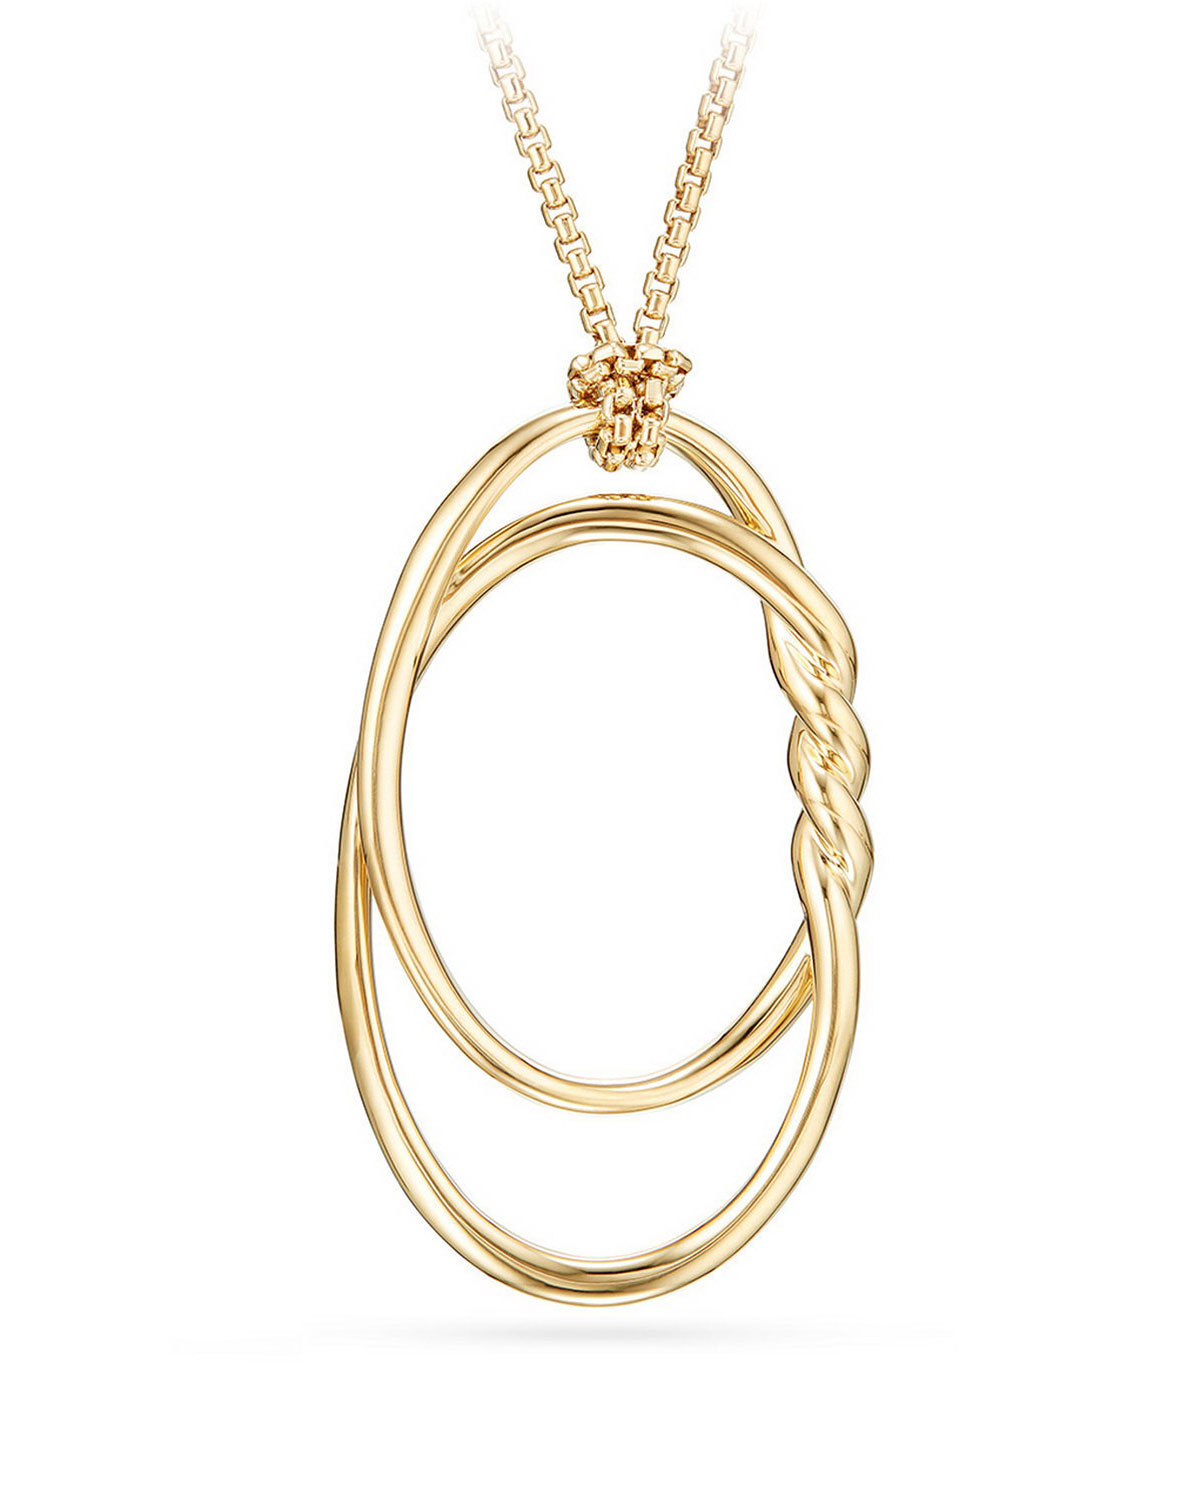 David Yurman 47mm Continuance 18K Gold Pendant Necklace